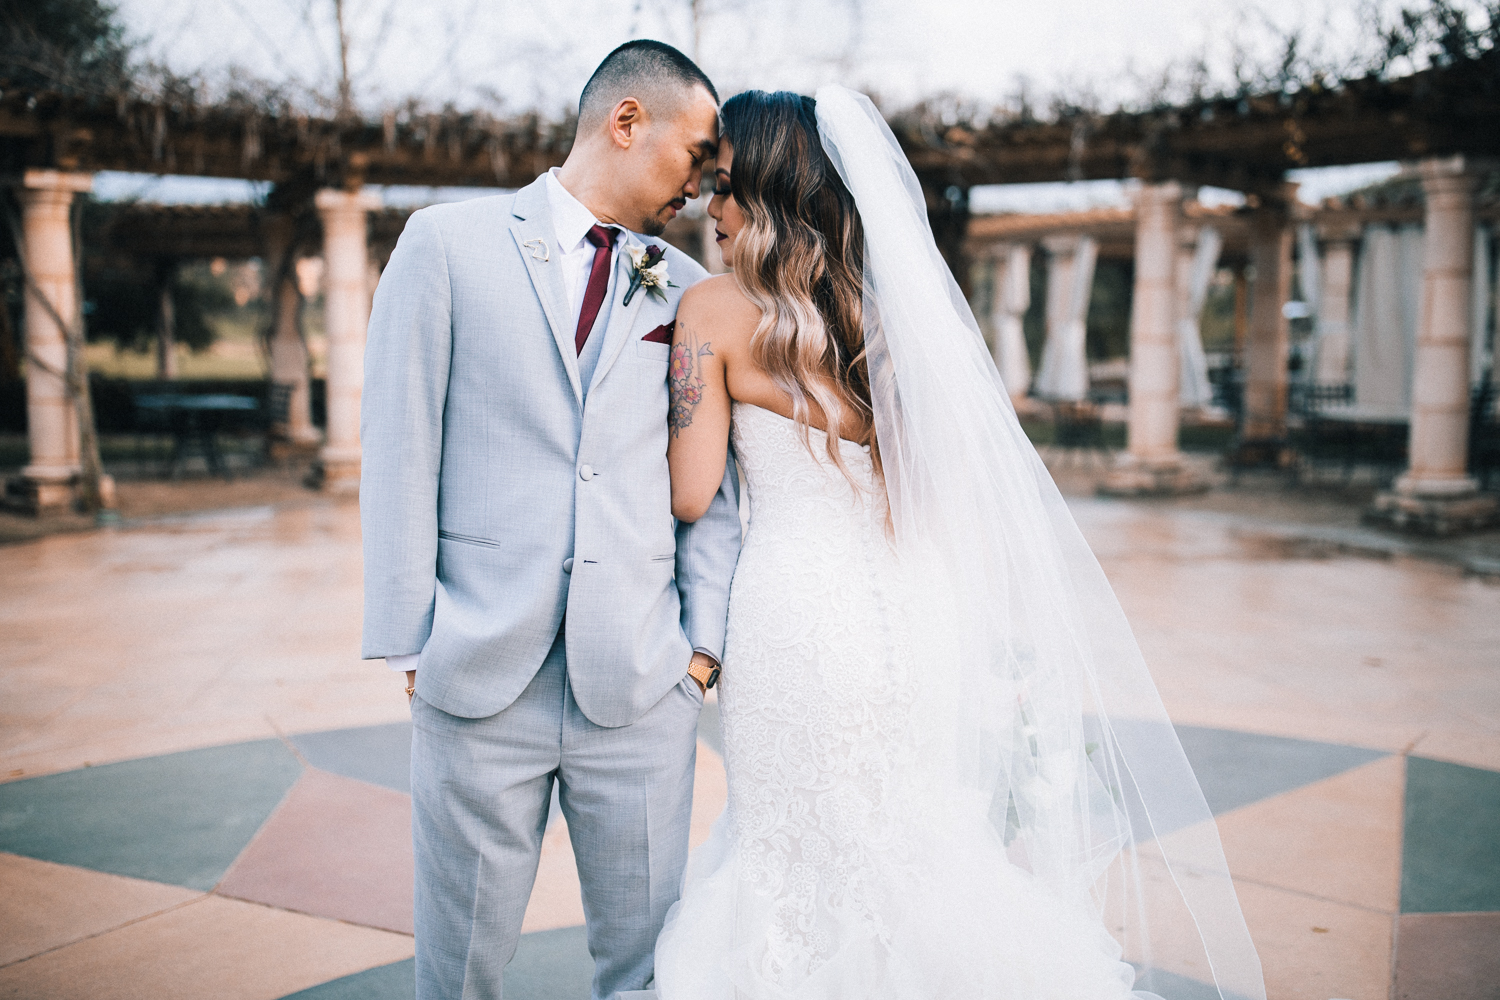 2019_01_ 202019.01.20 Santiago Wedding Blog Photos Edited For Web 0074.jpg